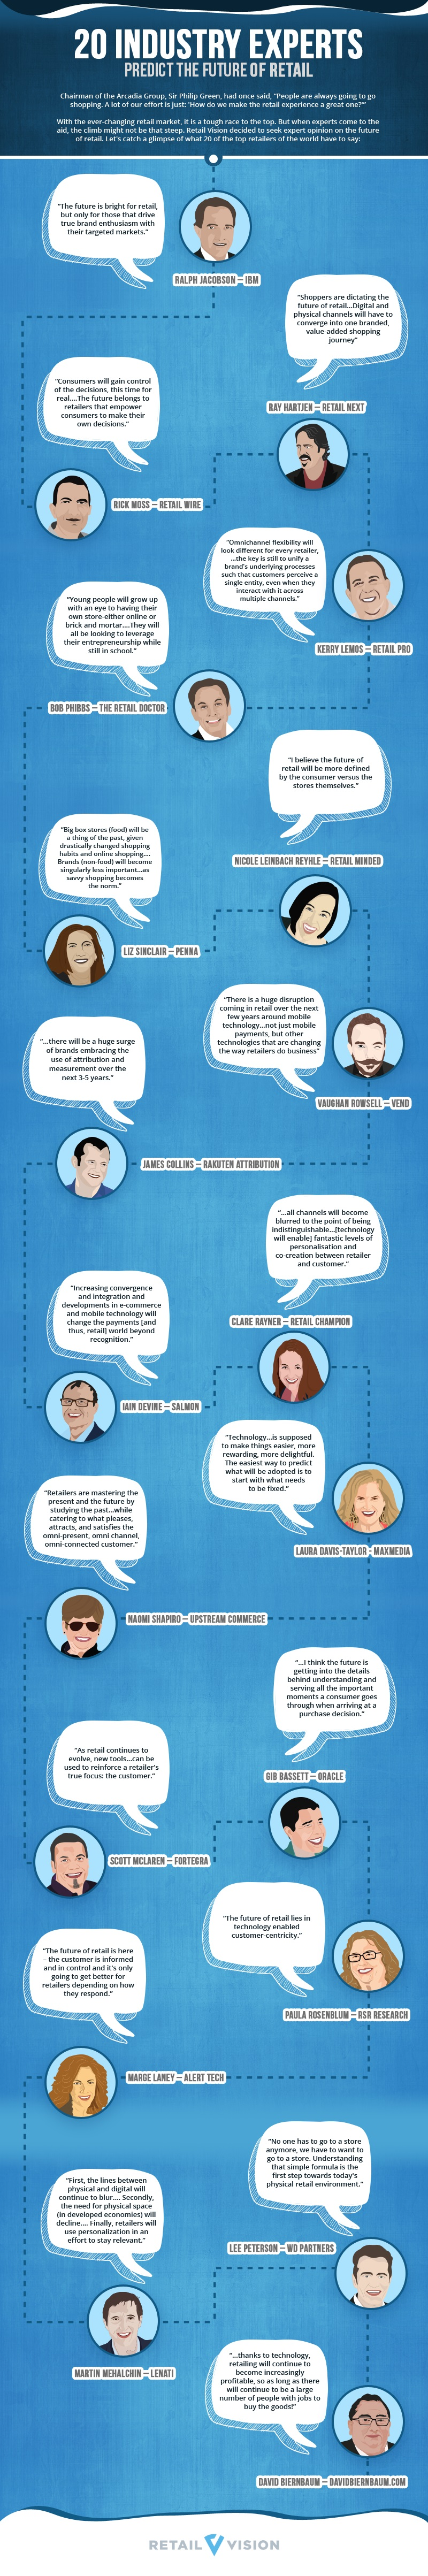 Retail-Vision-Experts-Infographic